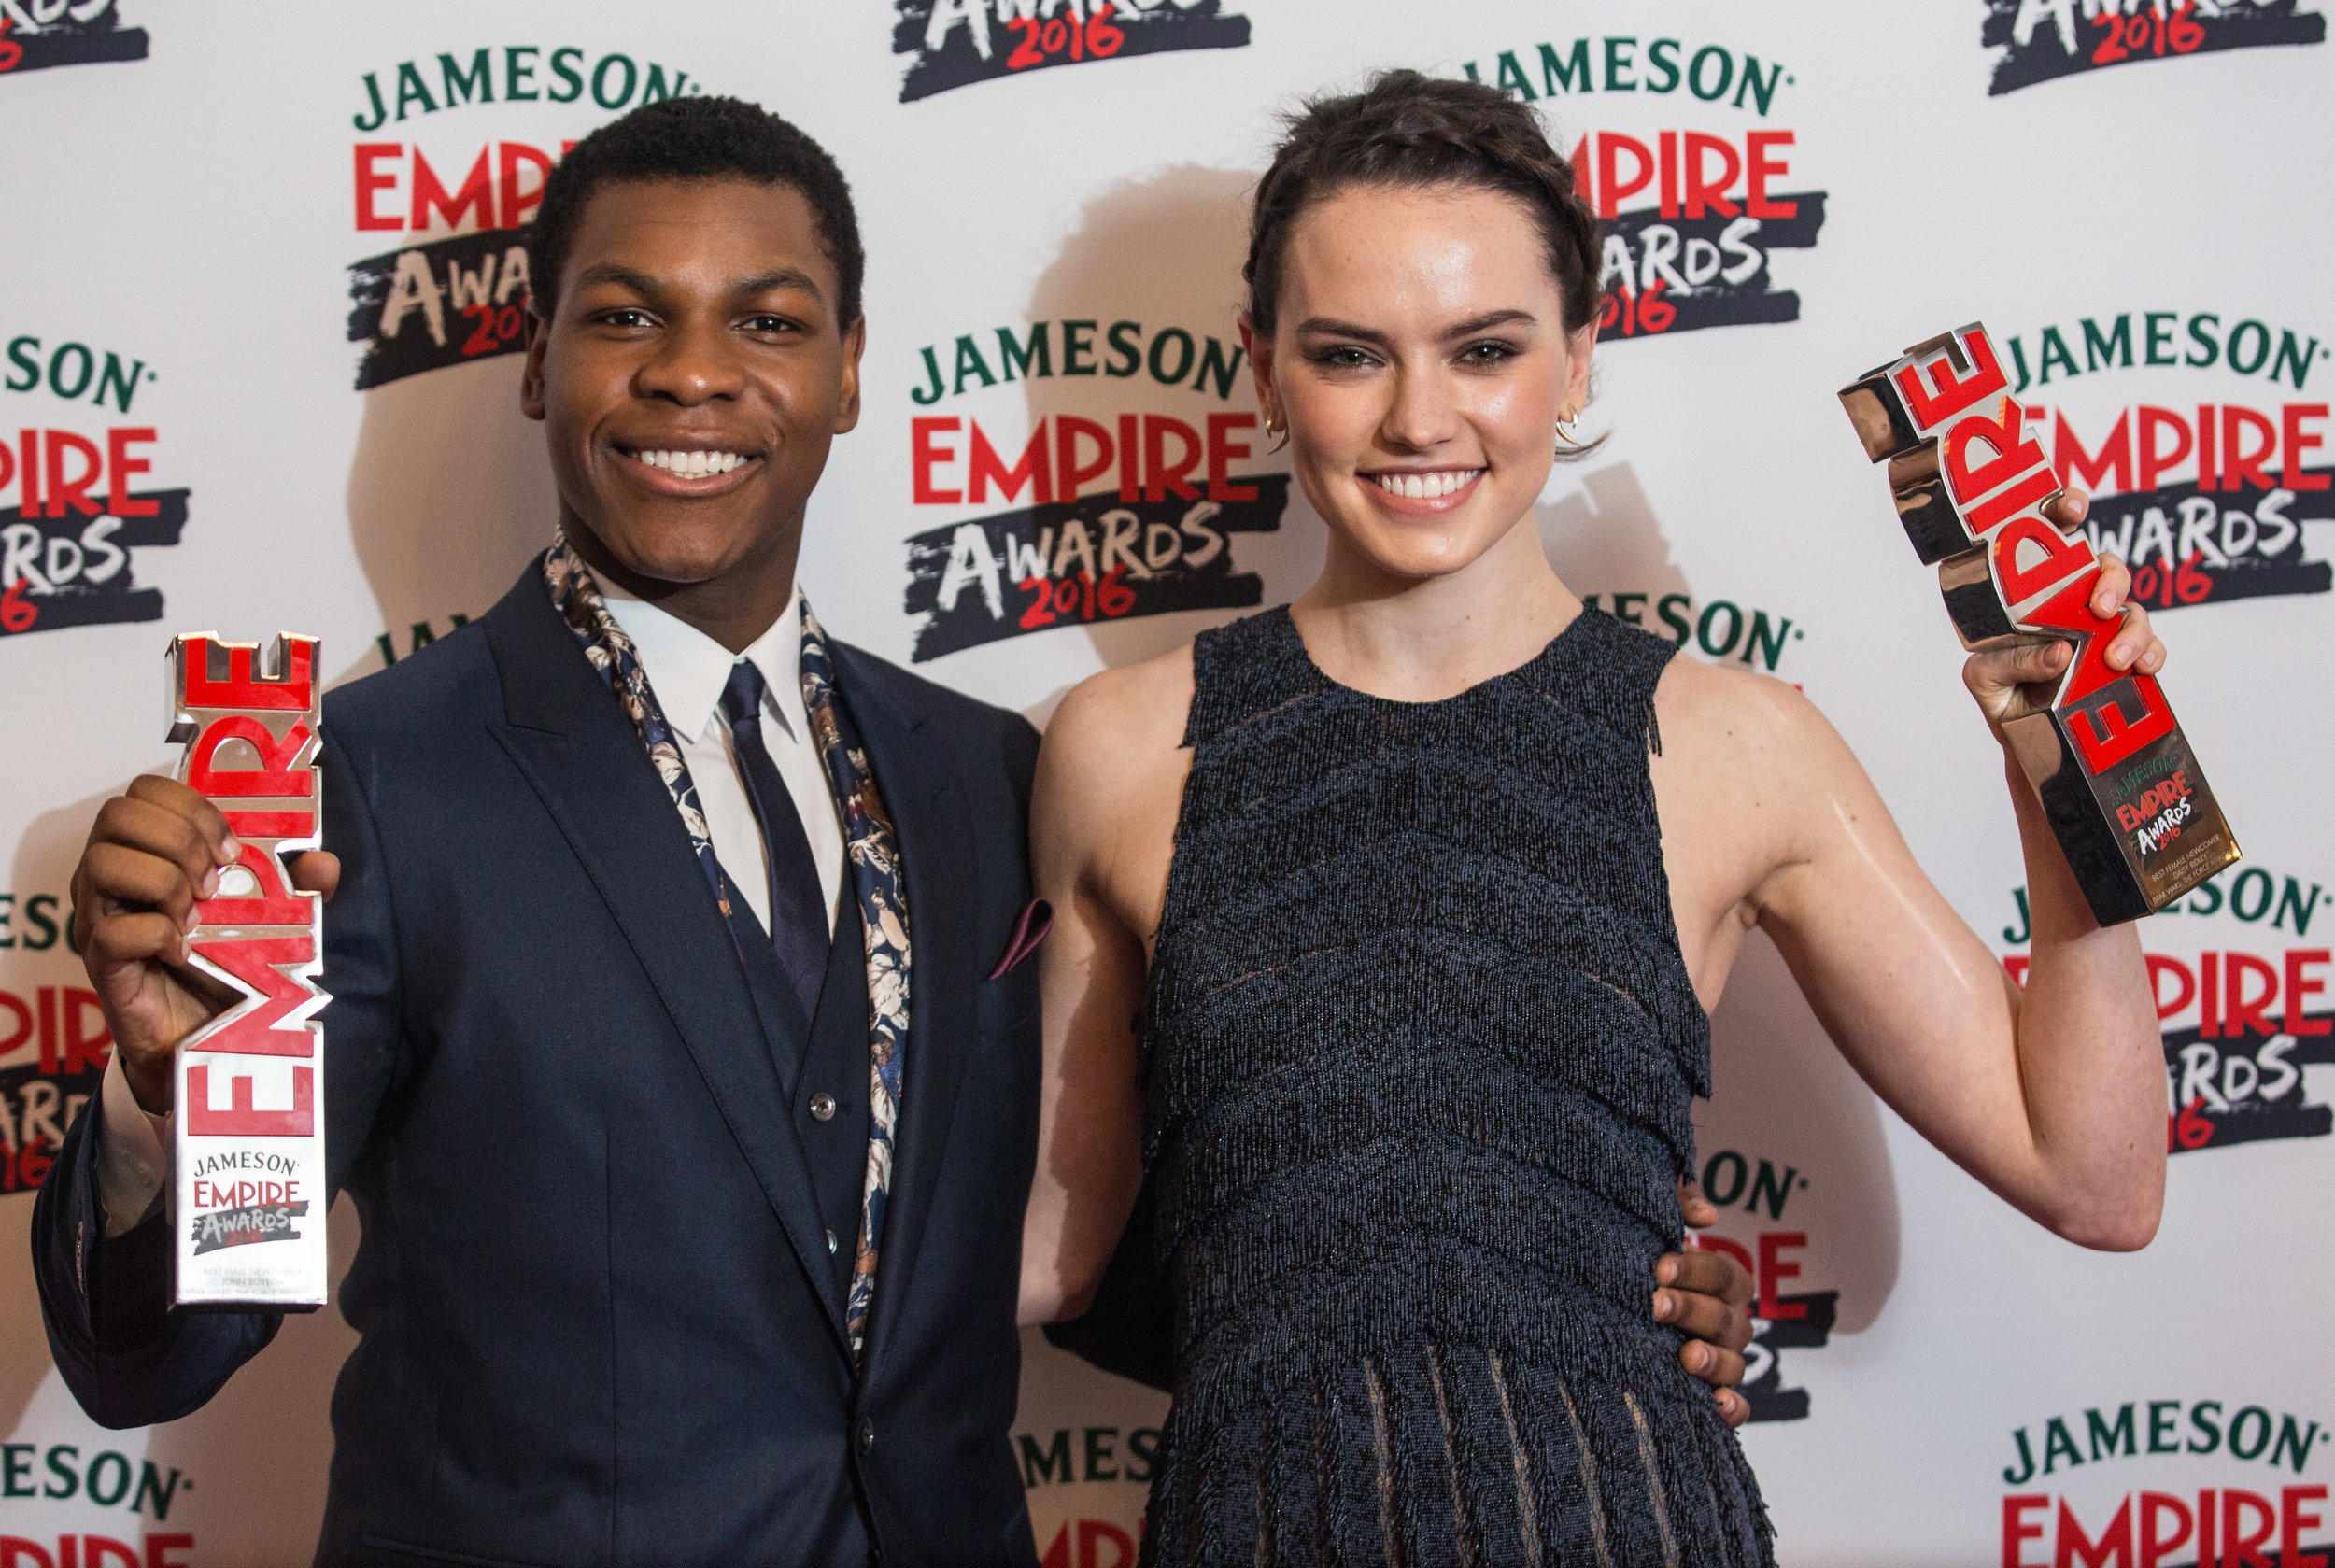 John Boyega and Daisy Ridley, winners of Best New Comers (Female and Male)